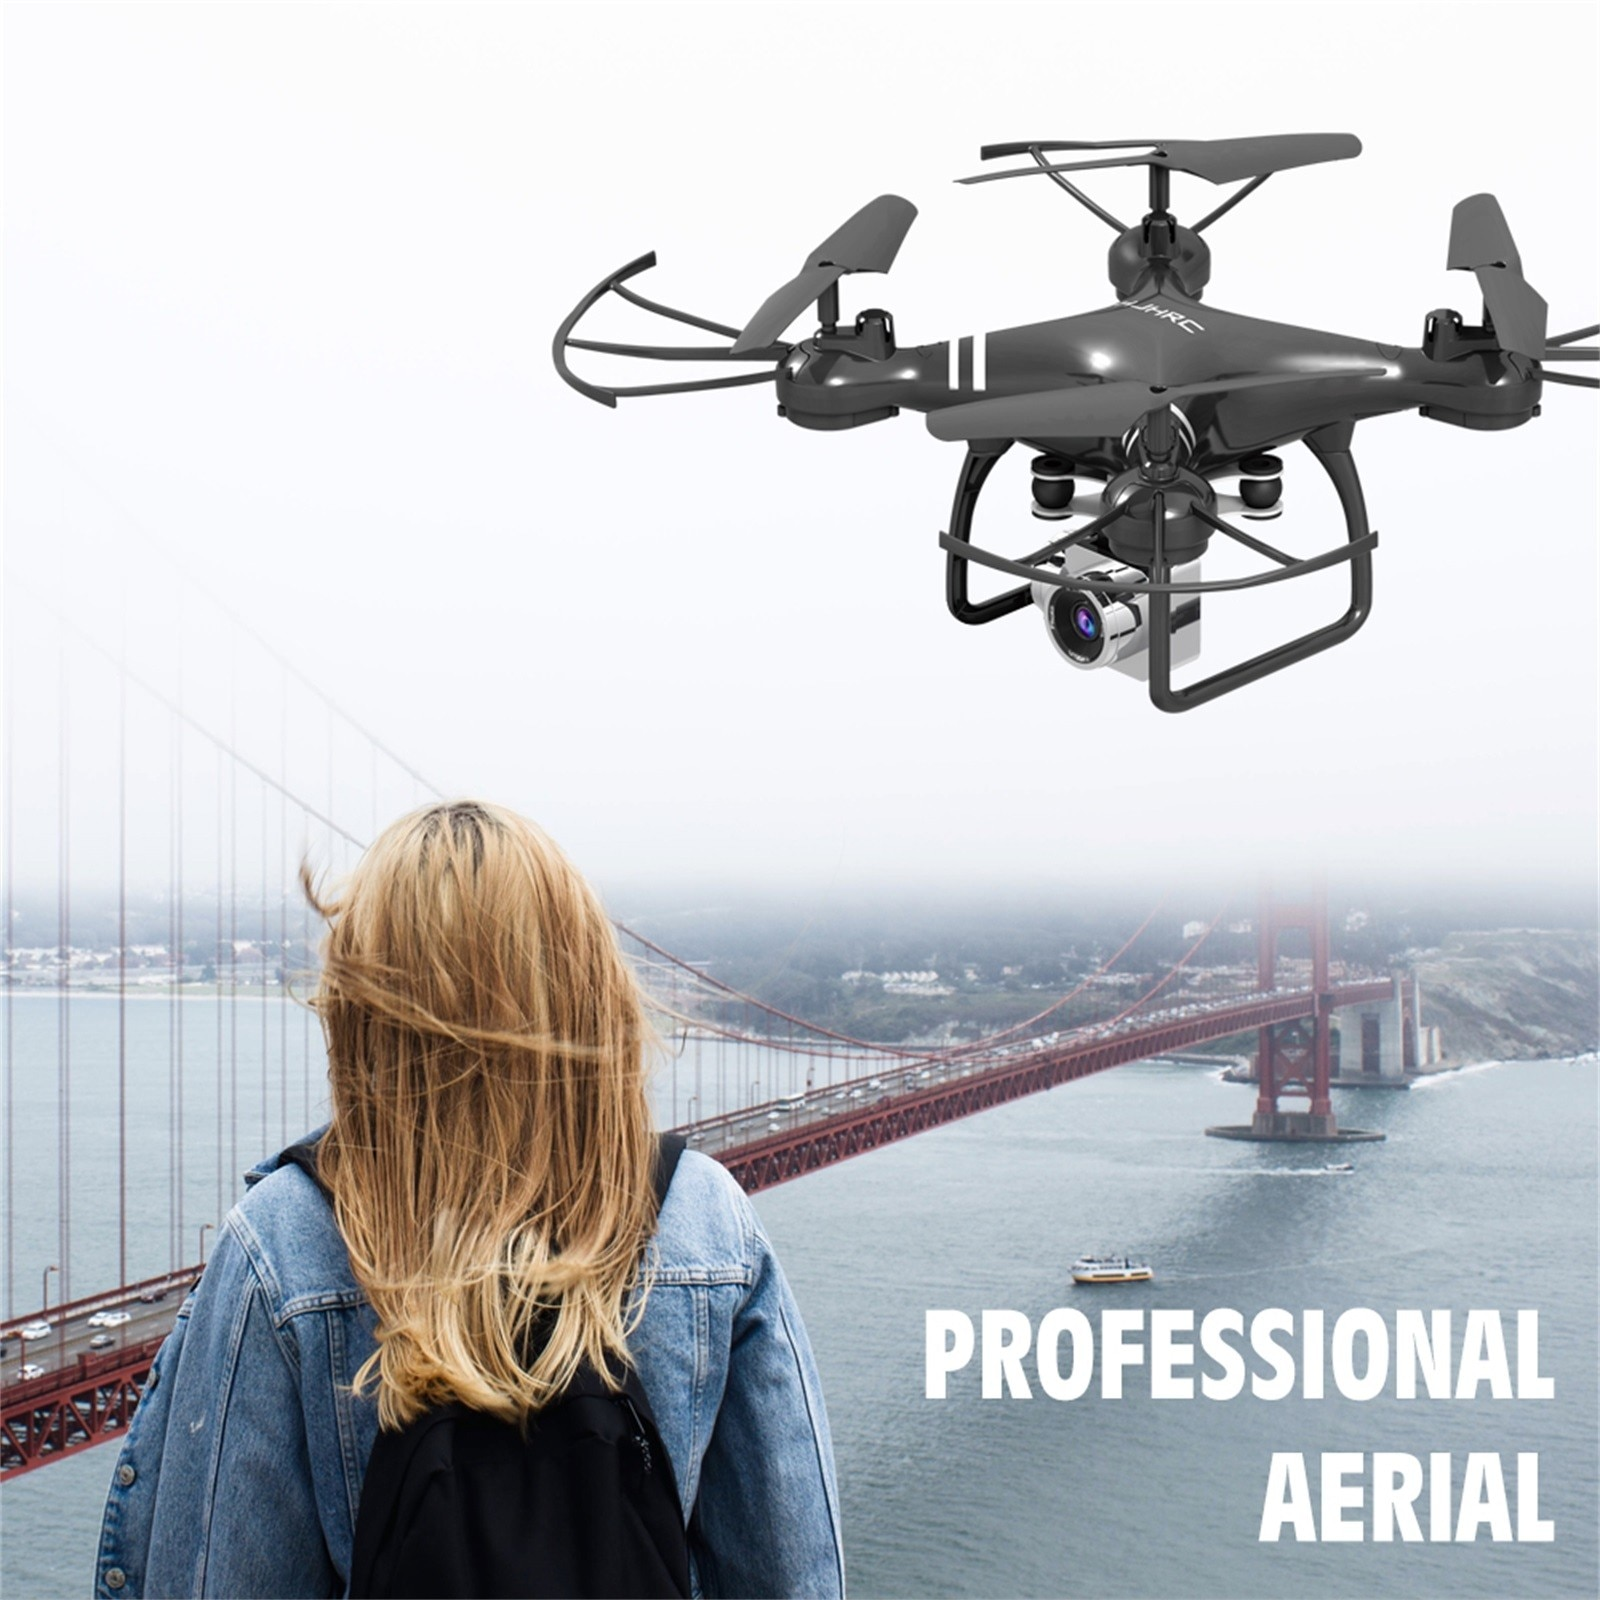 H7a4fa23dde204157a1d26b1570ef8890I - Hjhrc Four-axis Aerial Photography Aircraft Drone With Camera Hd 4k Wifi Fpv Foldable Drone Height Holding Headless Quadcopter